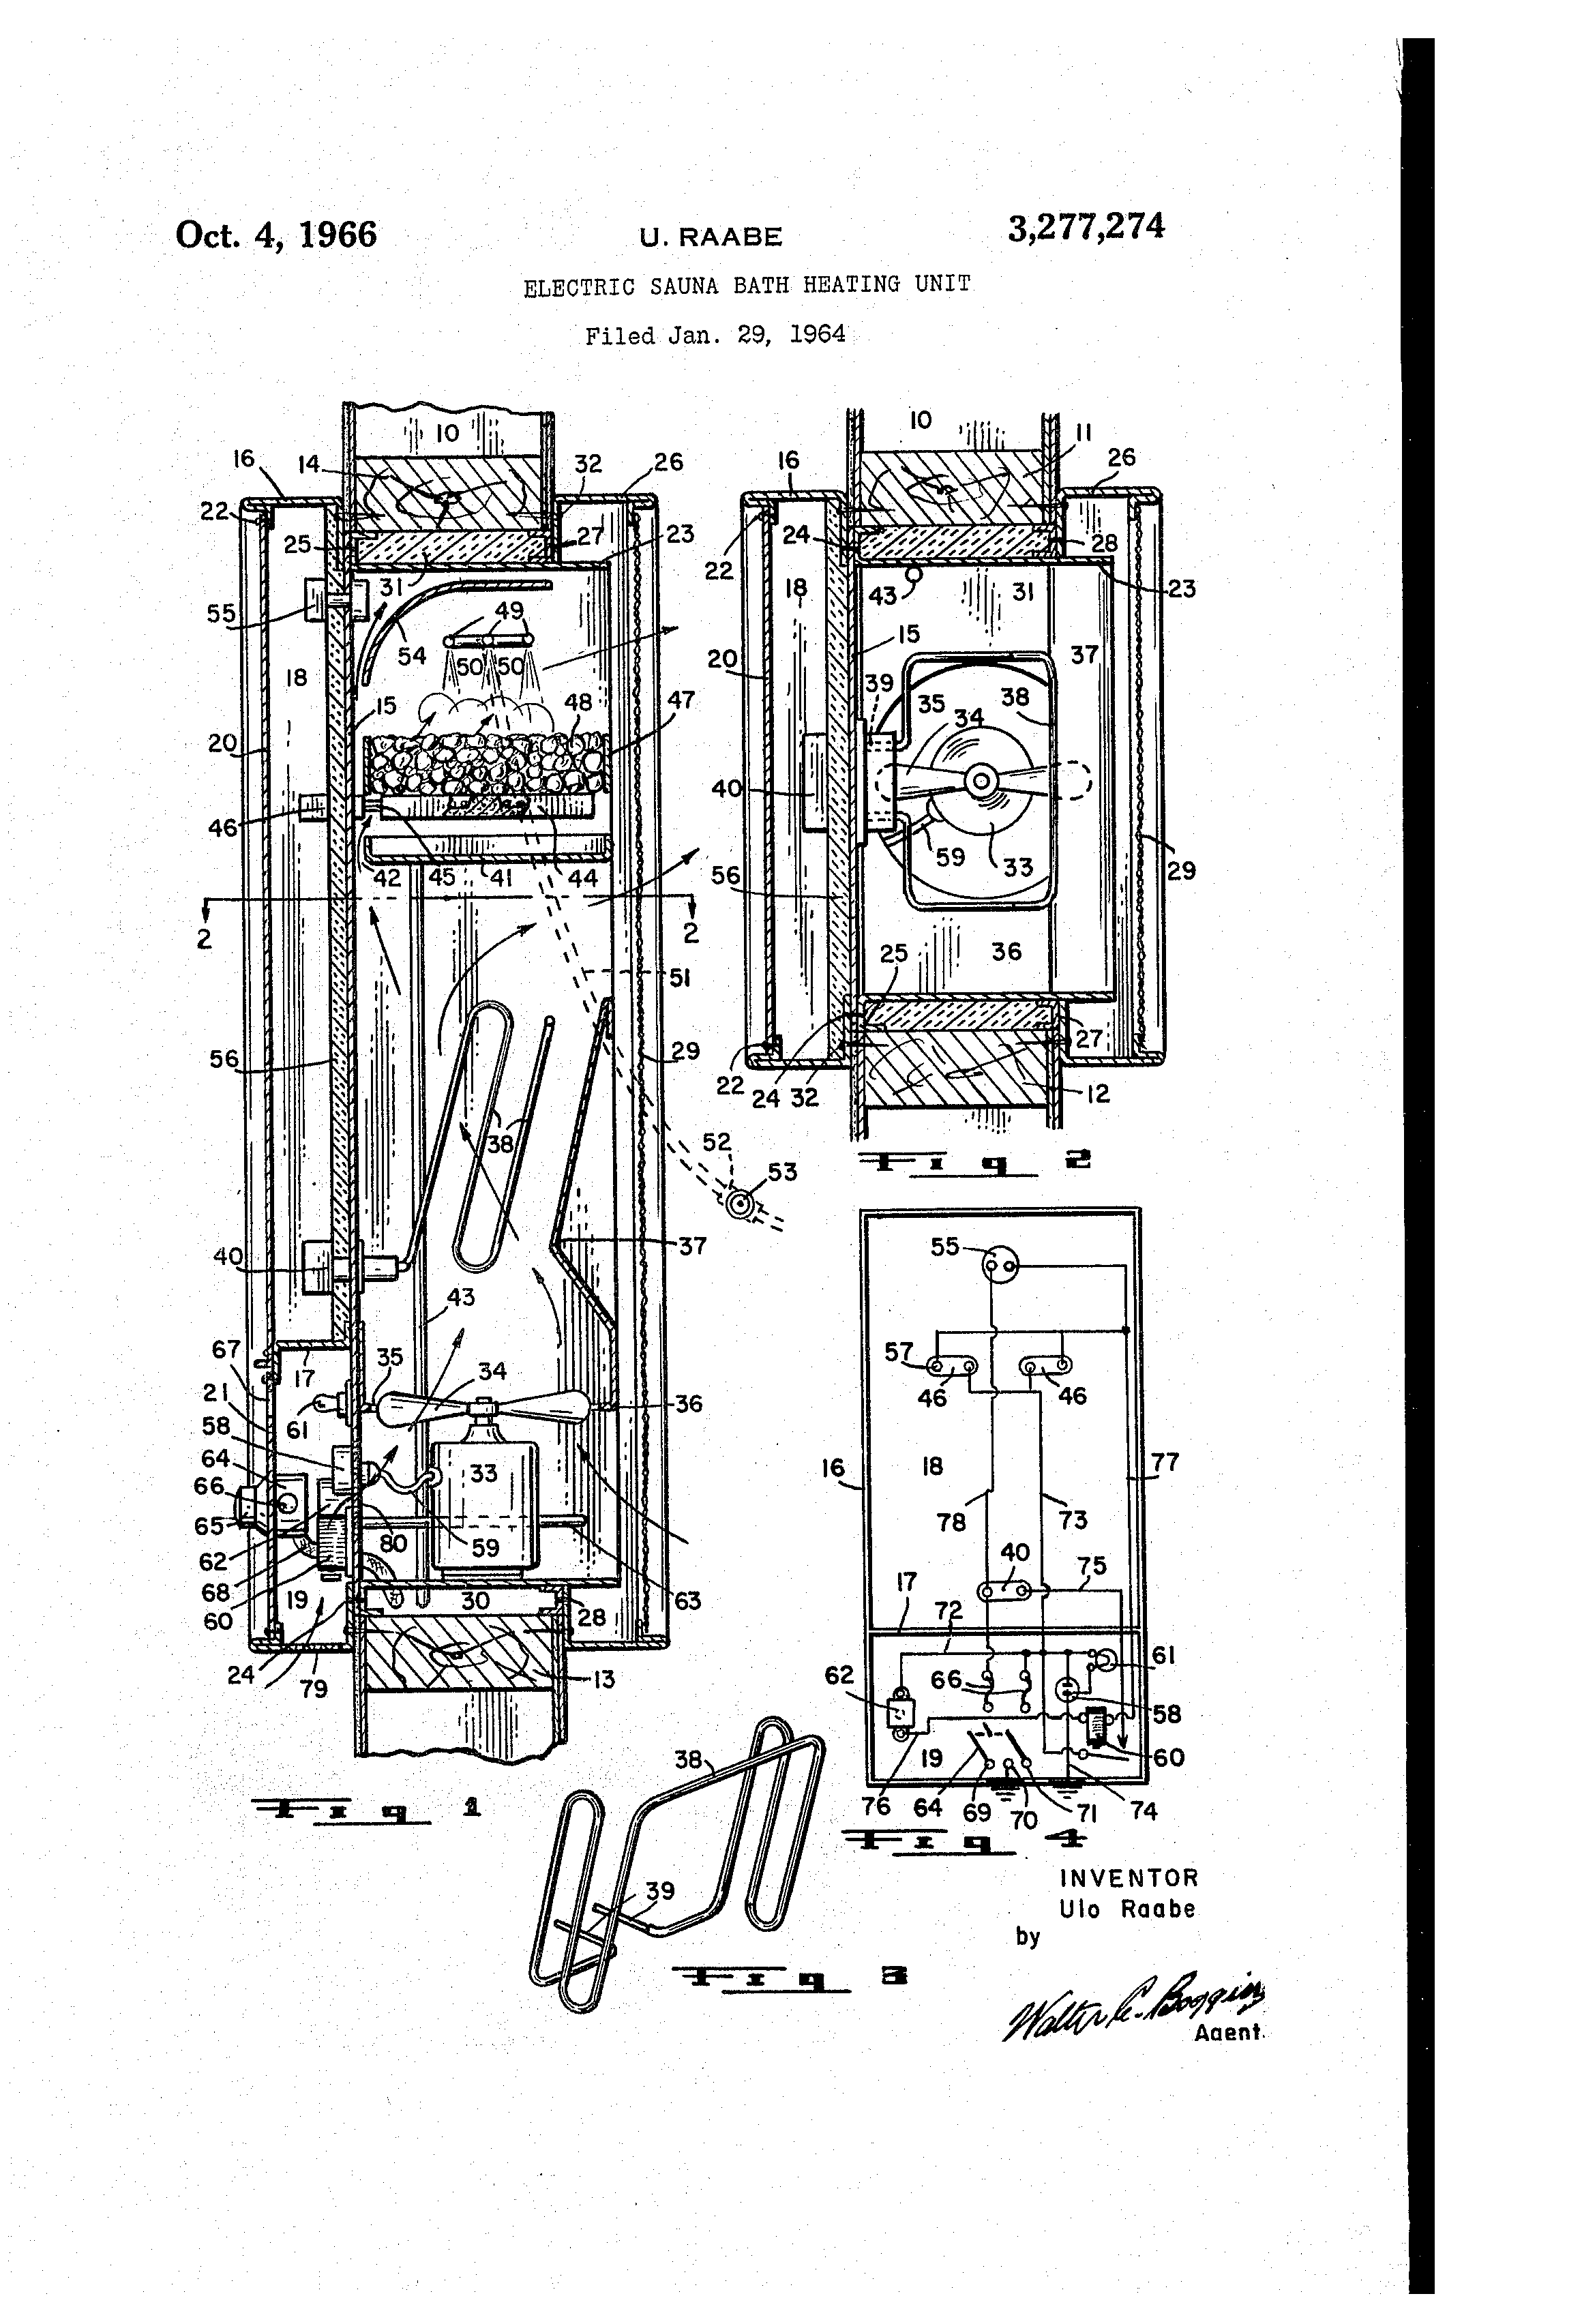 Brevet Us3277274 Electric Sauna Bath Heating Unit Google Brevets Wiring Diagram Patent Drawing